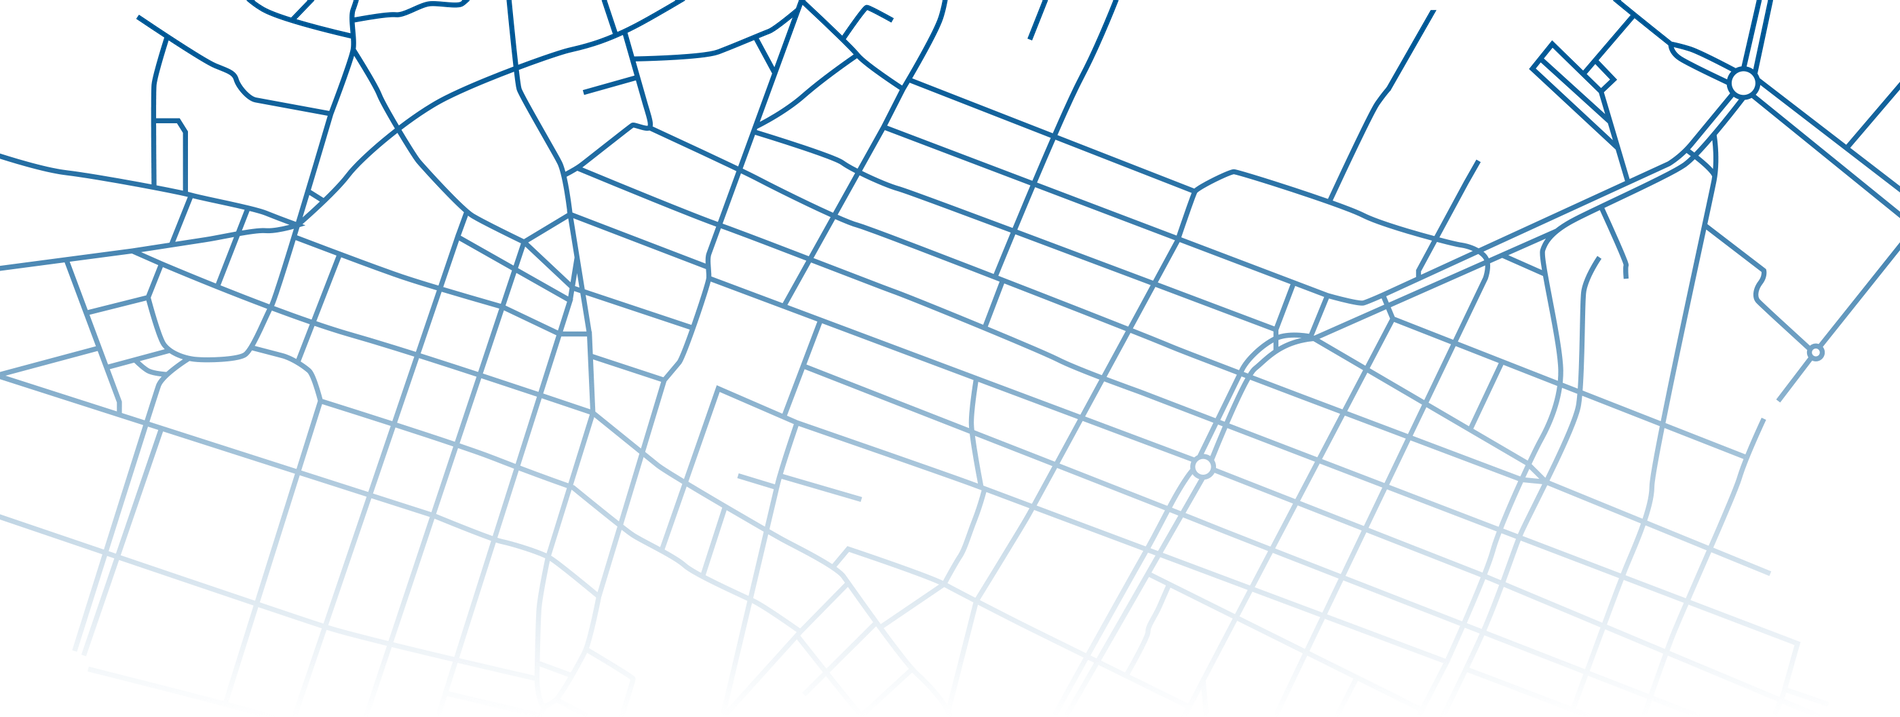 Map pattern of a urban area